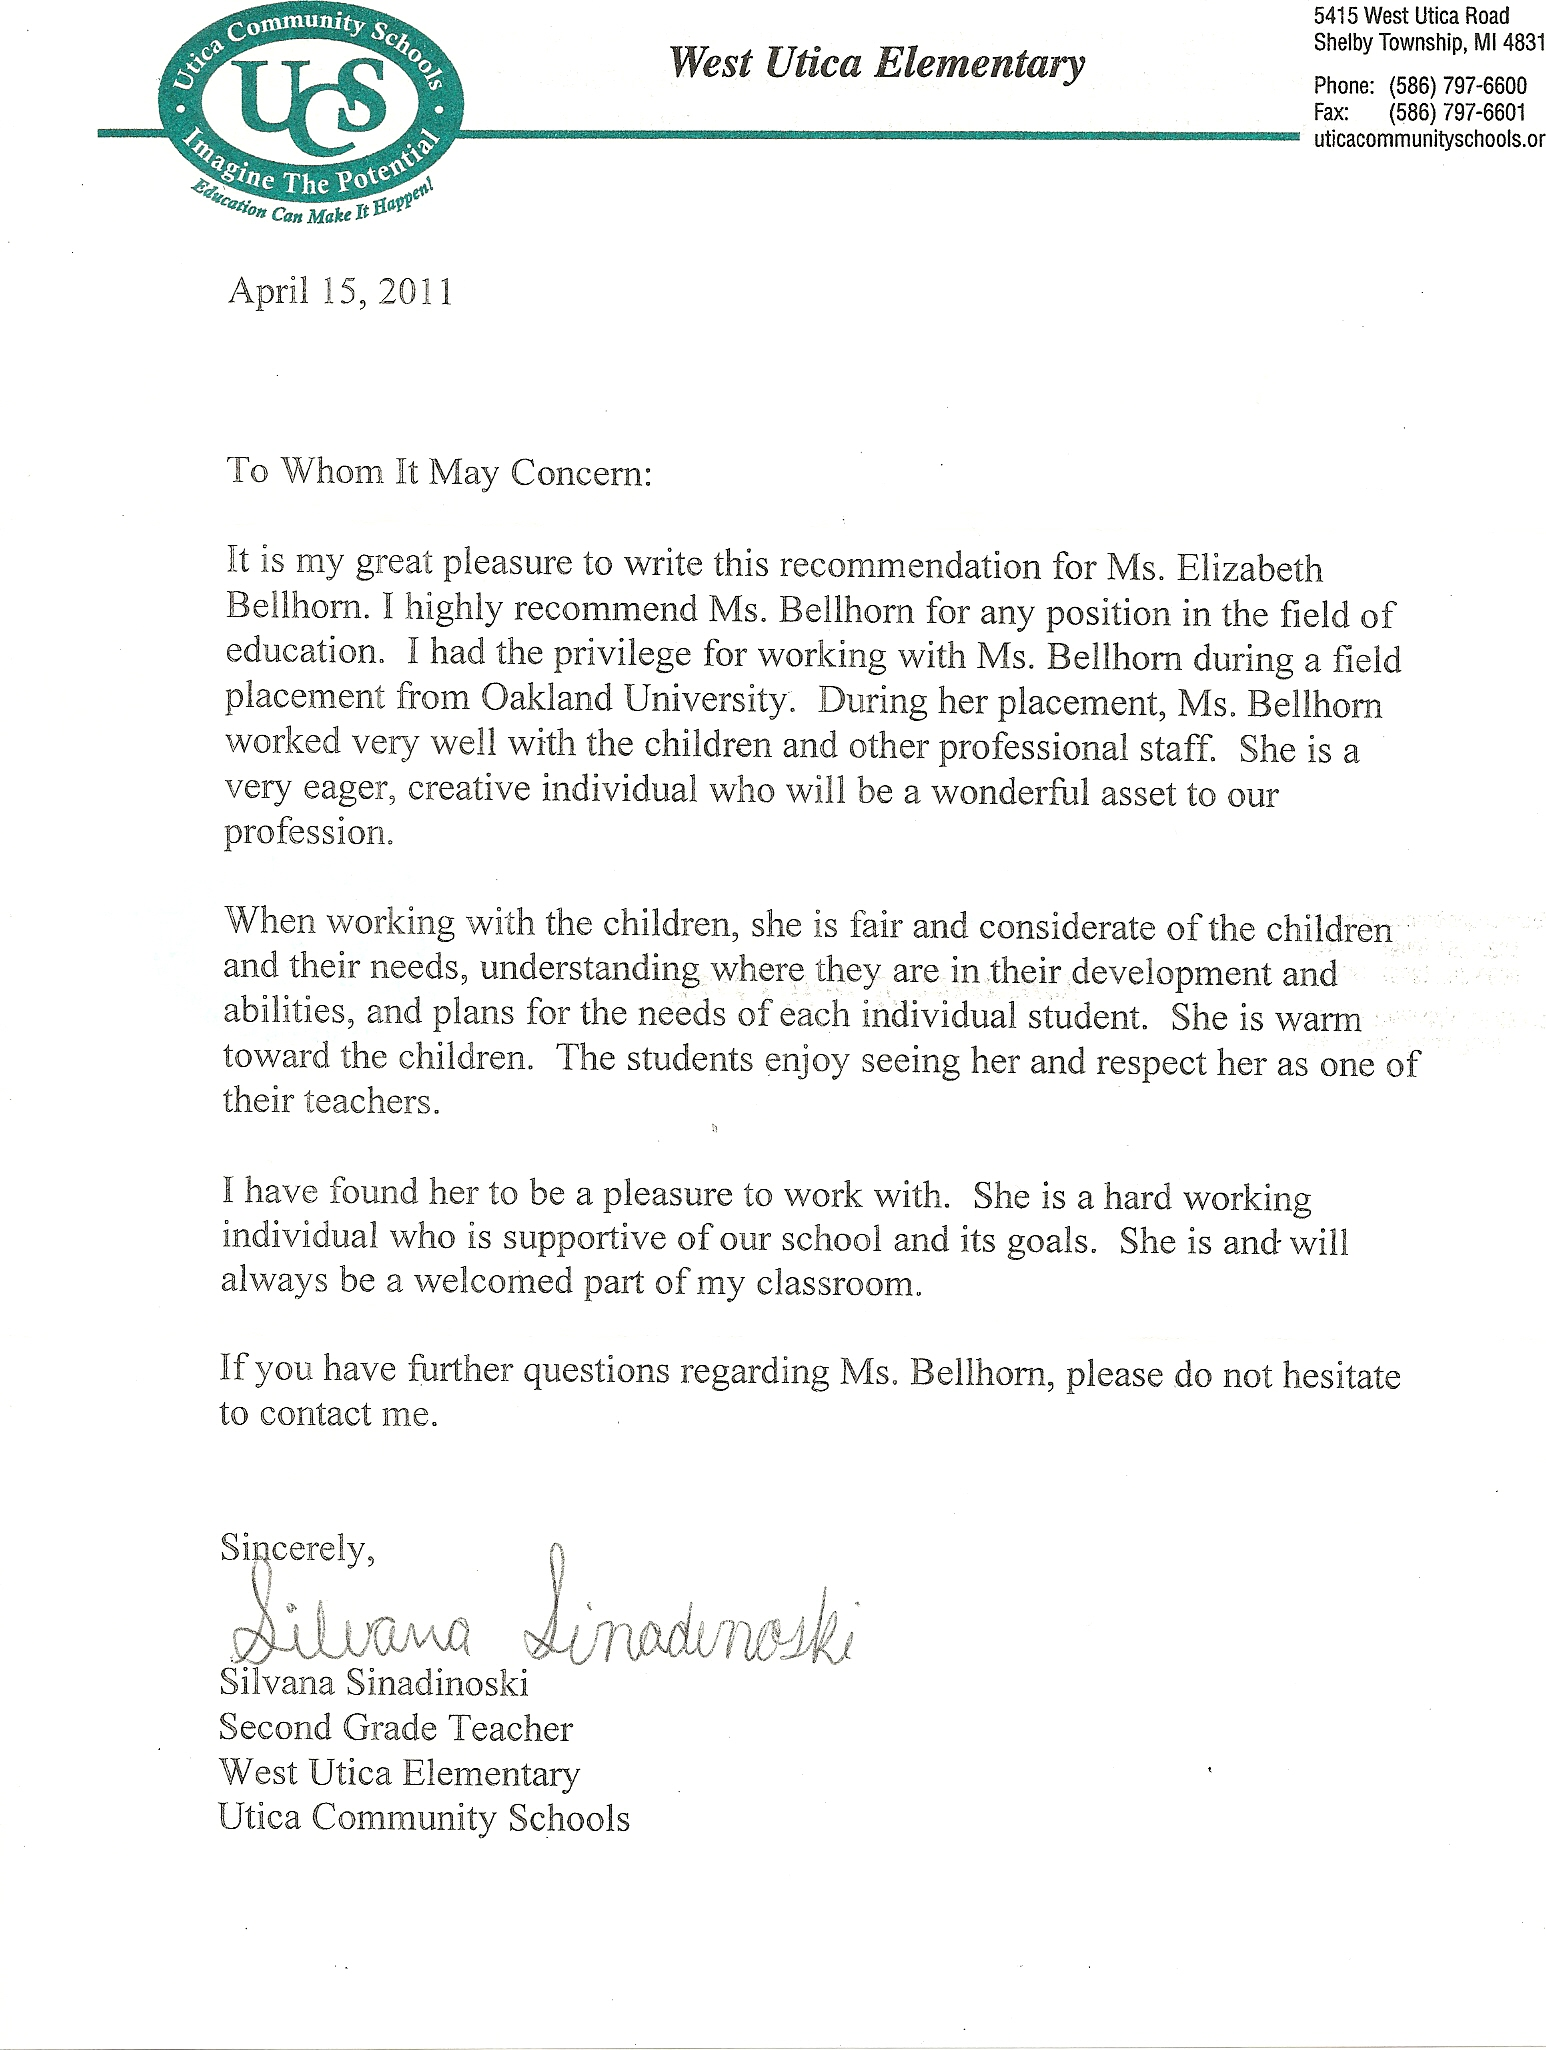 Letter Of Recommendation For Student Teacher From Supervisor  Ecza